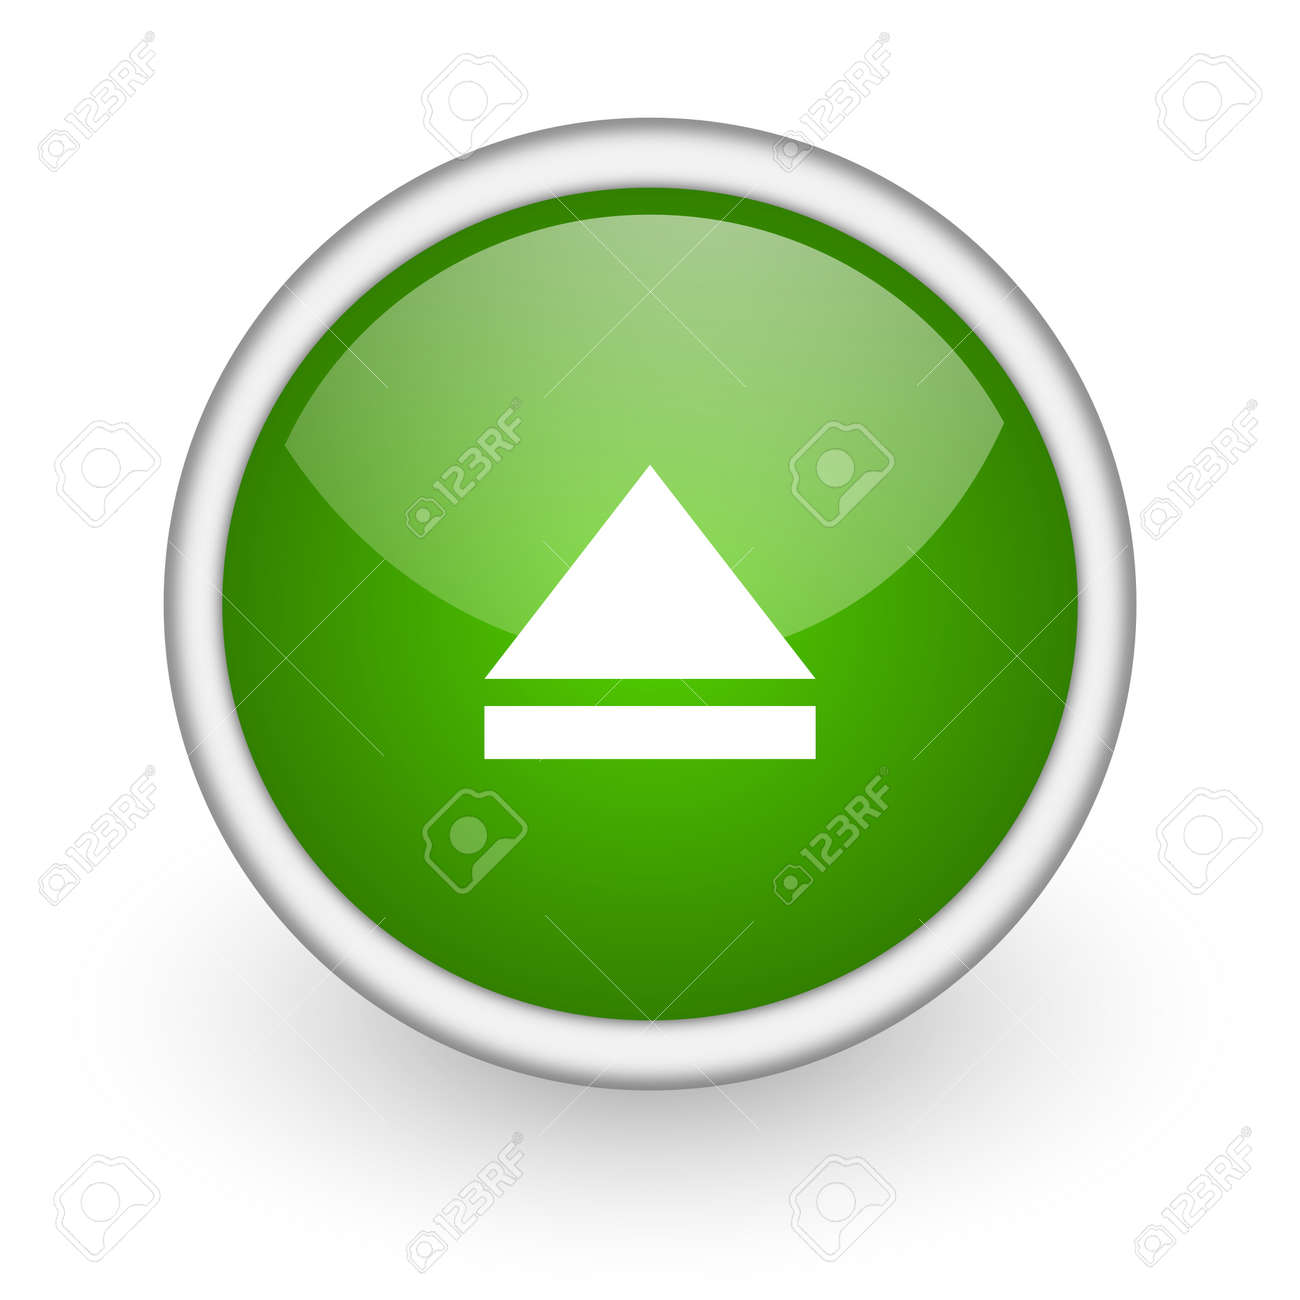 eject green circle glossy web icon on white background Stock Photo - 17647515